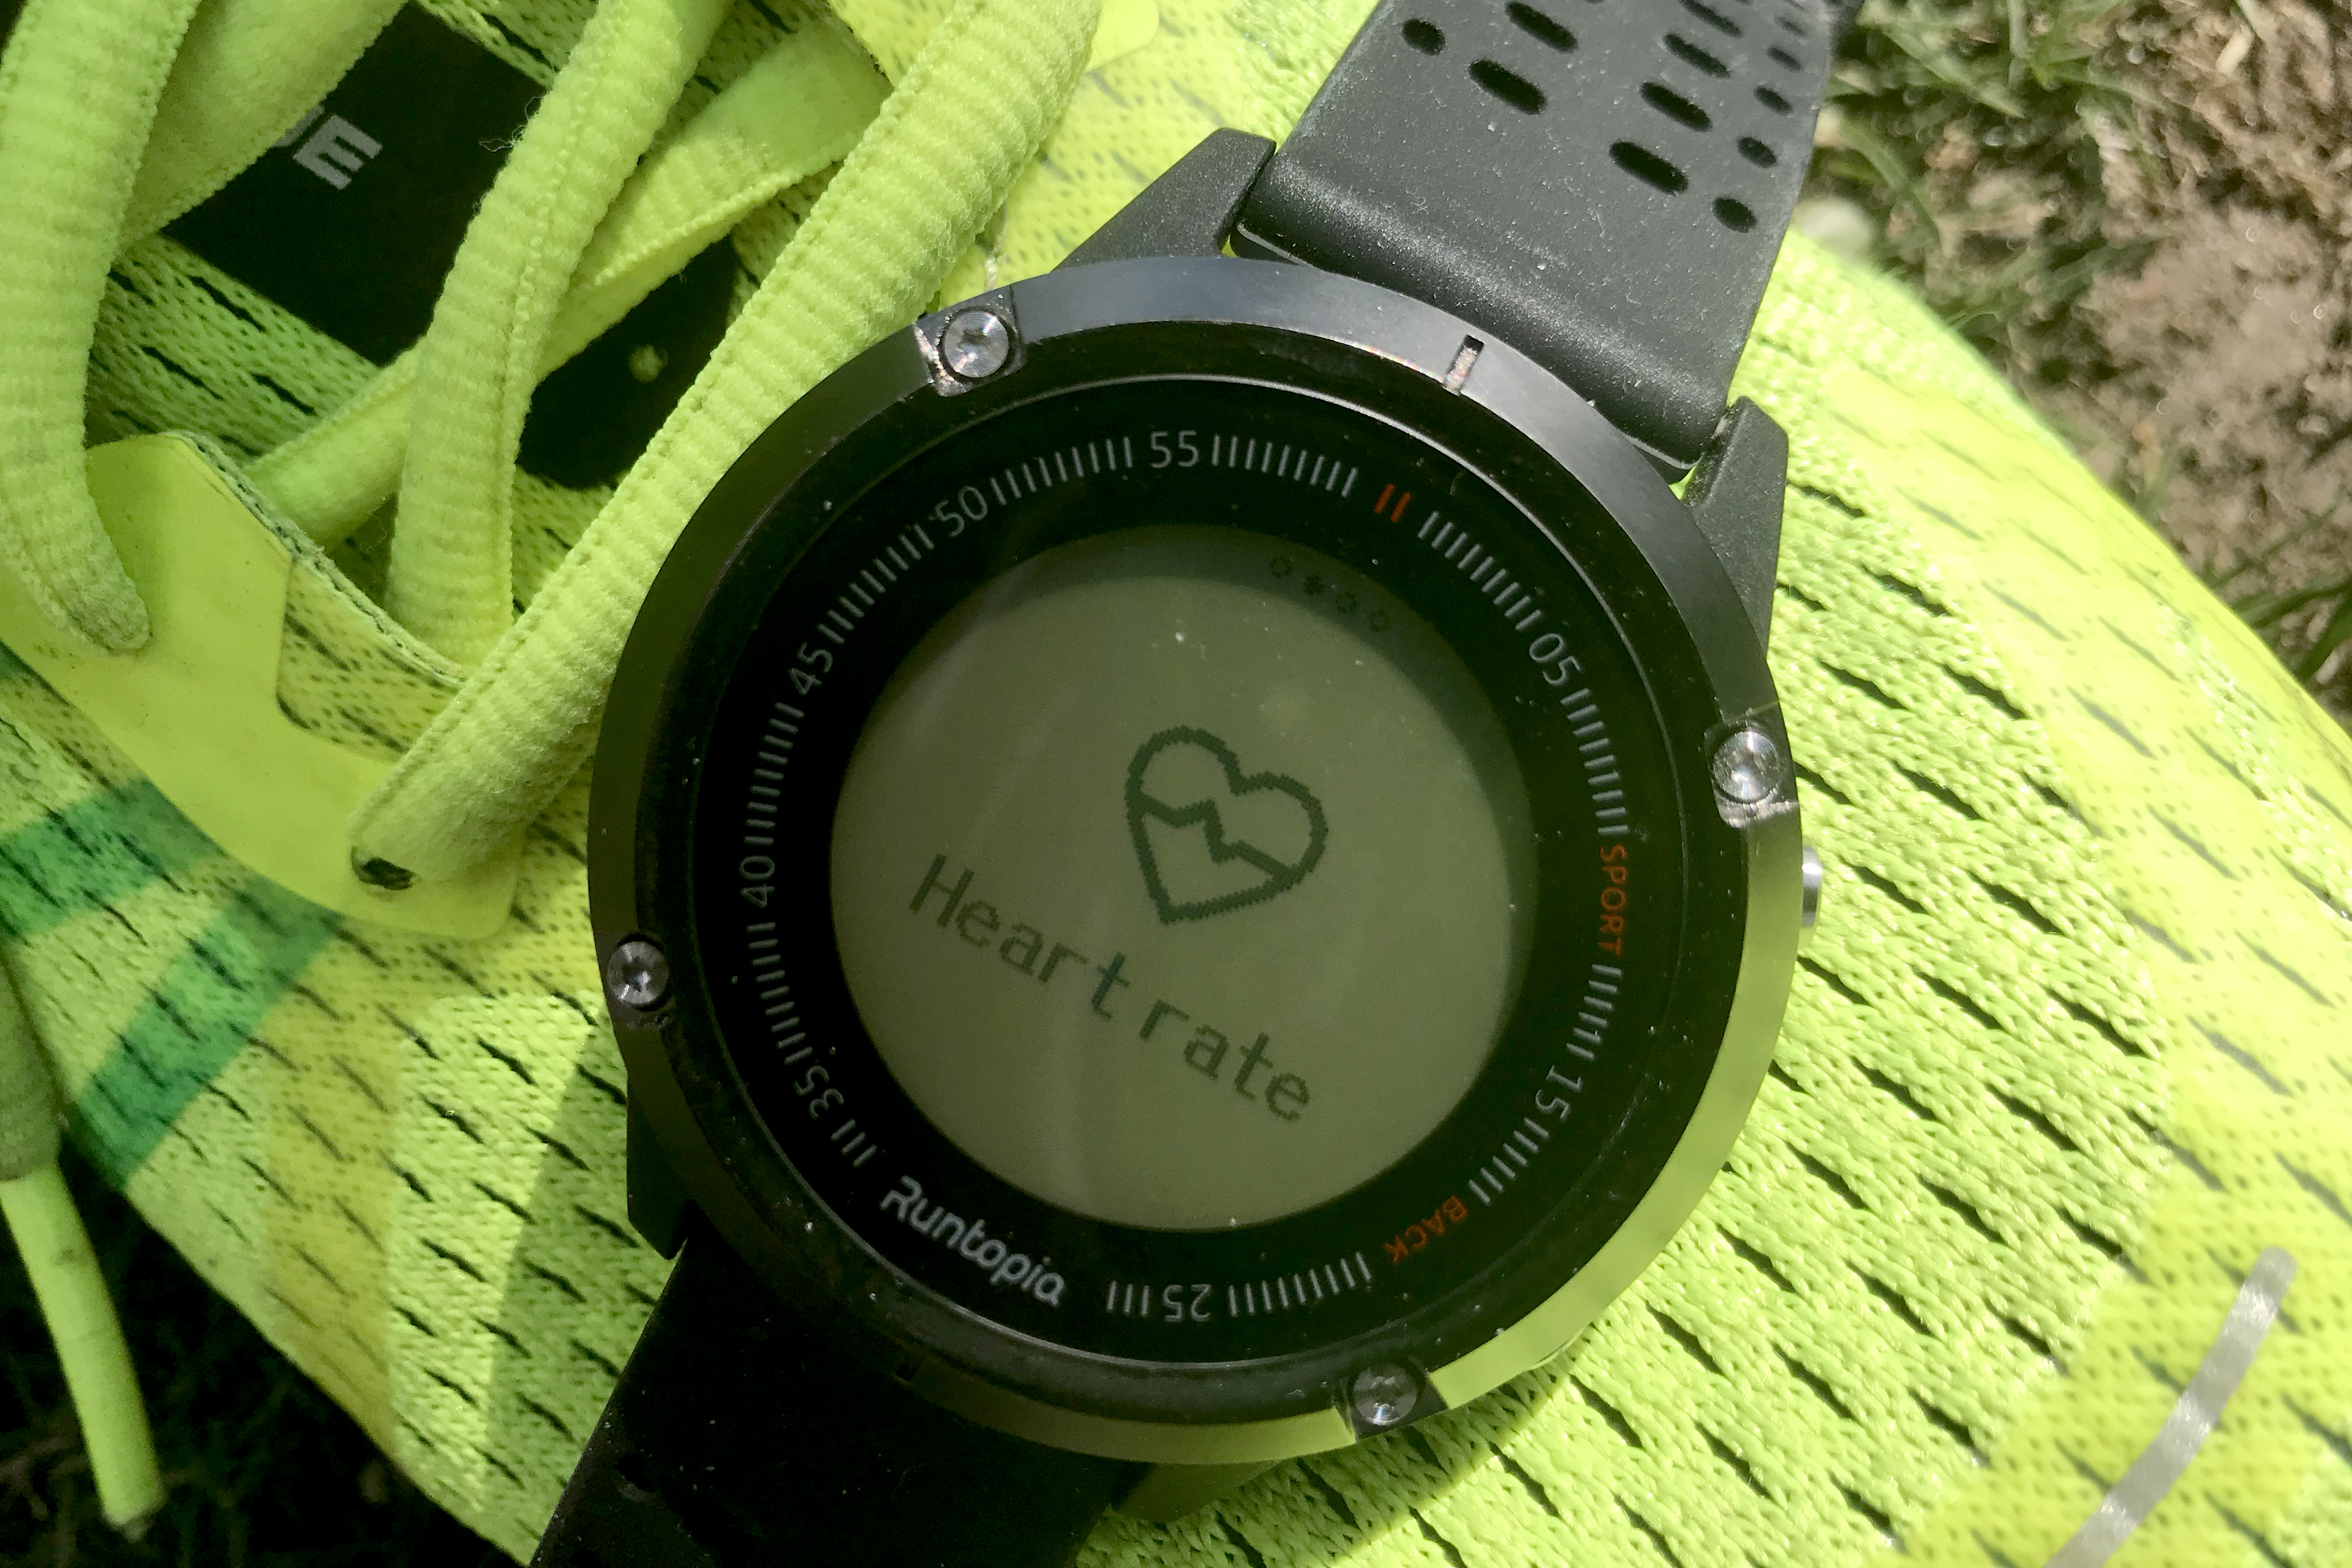 Runtopia GPS Watch Costs $69 and Actually Works   GearJunkie